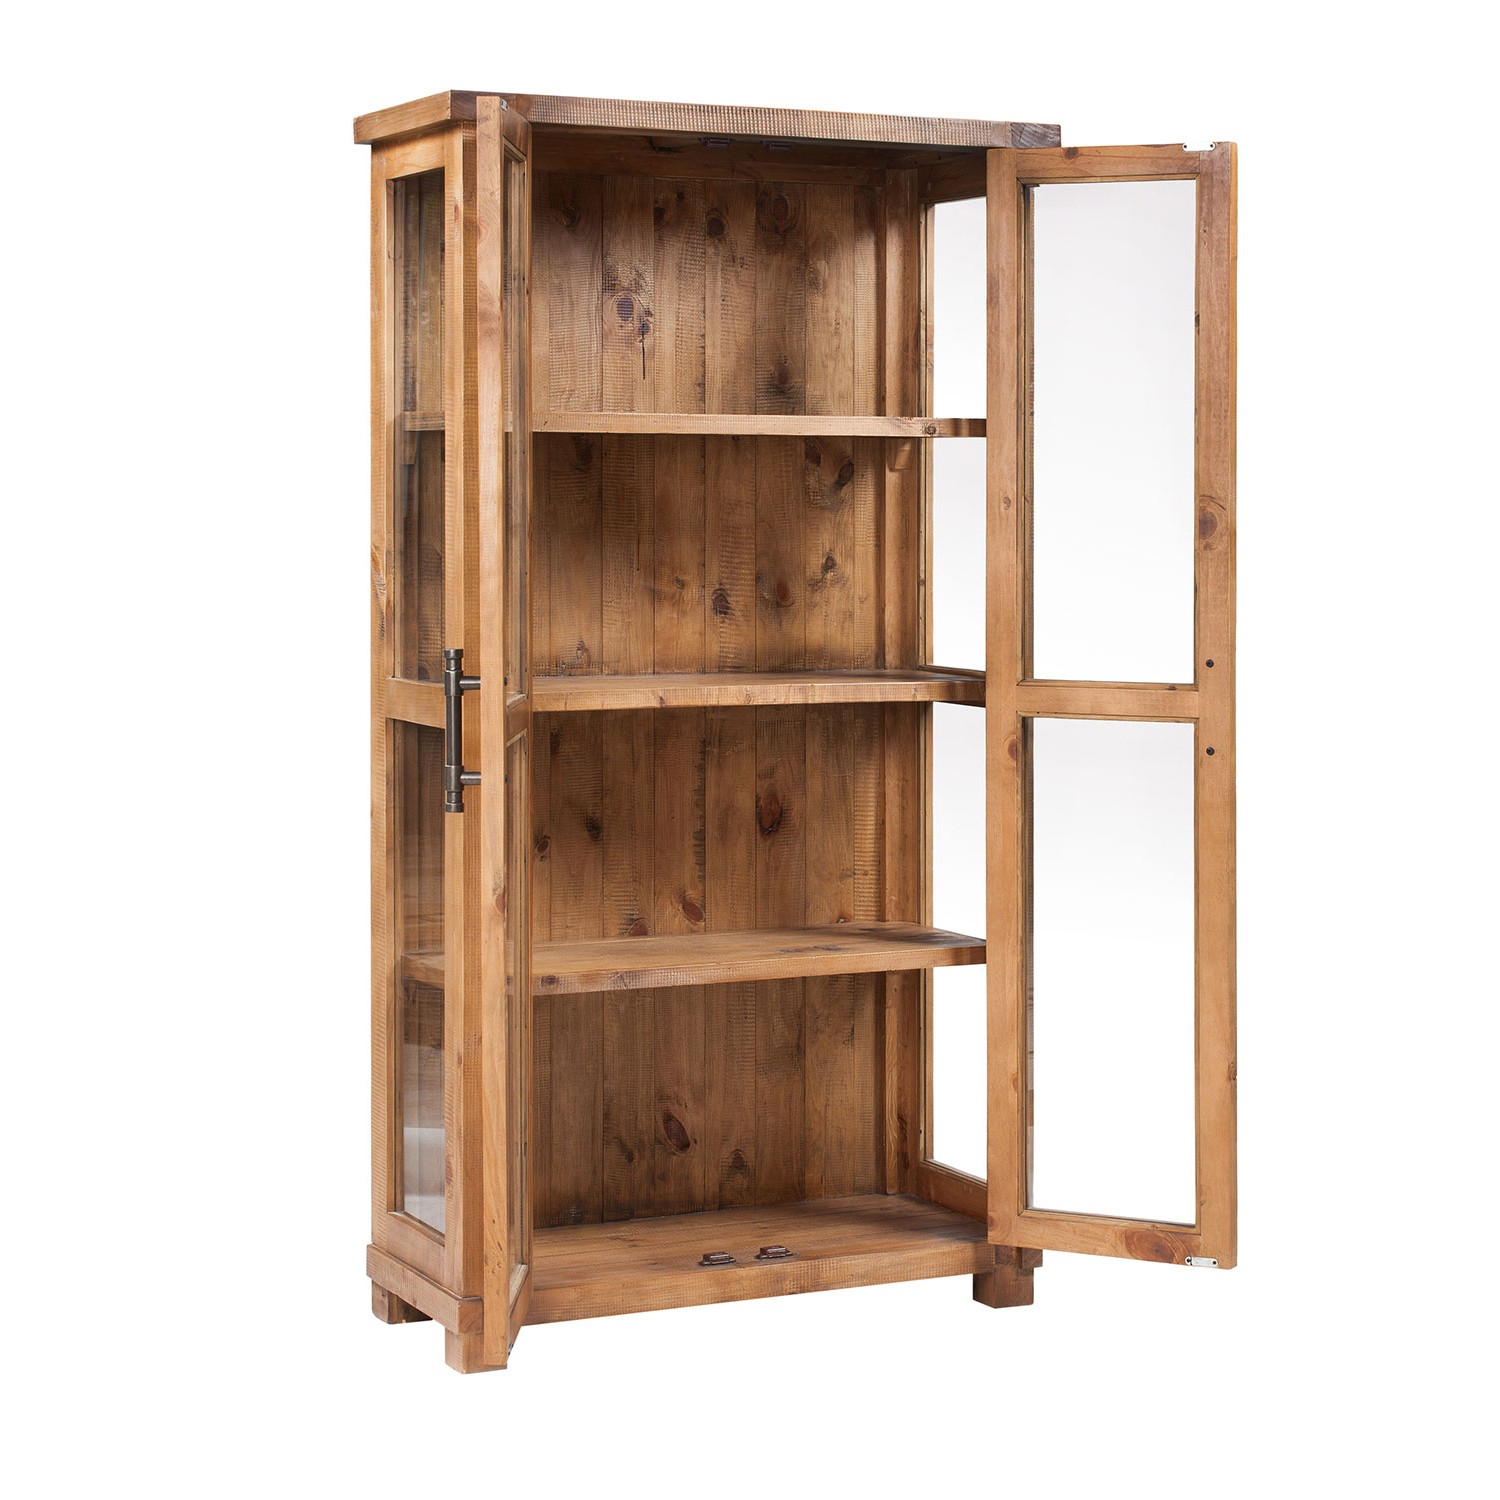 Incroyable Country Glass Display Cabinet W Doors 391773 Pine Woodfinish Throughout  Proportions 1500 X 1500